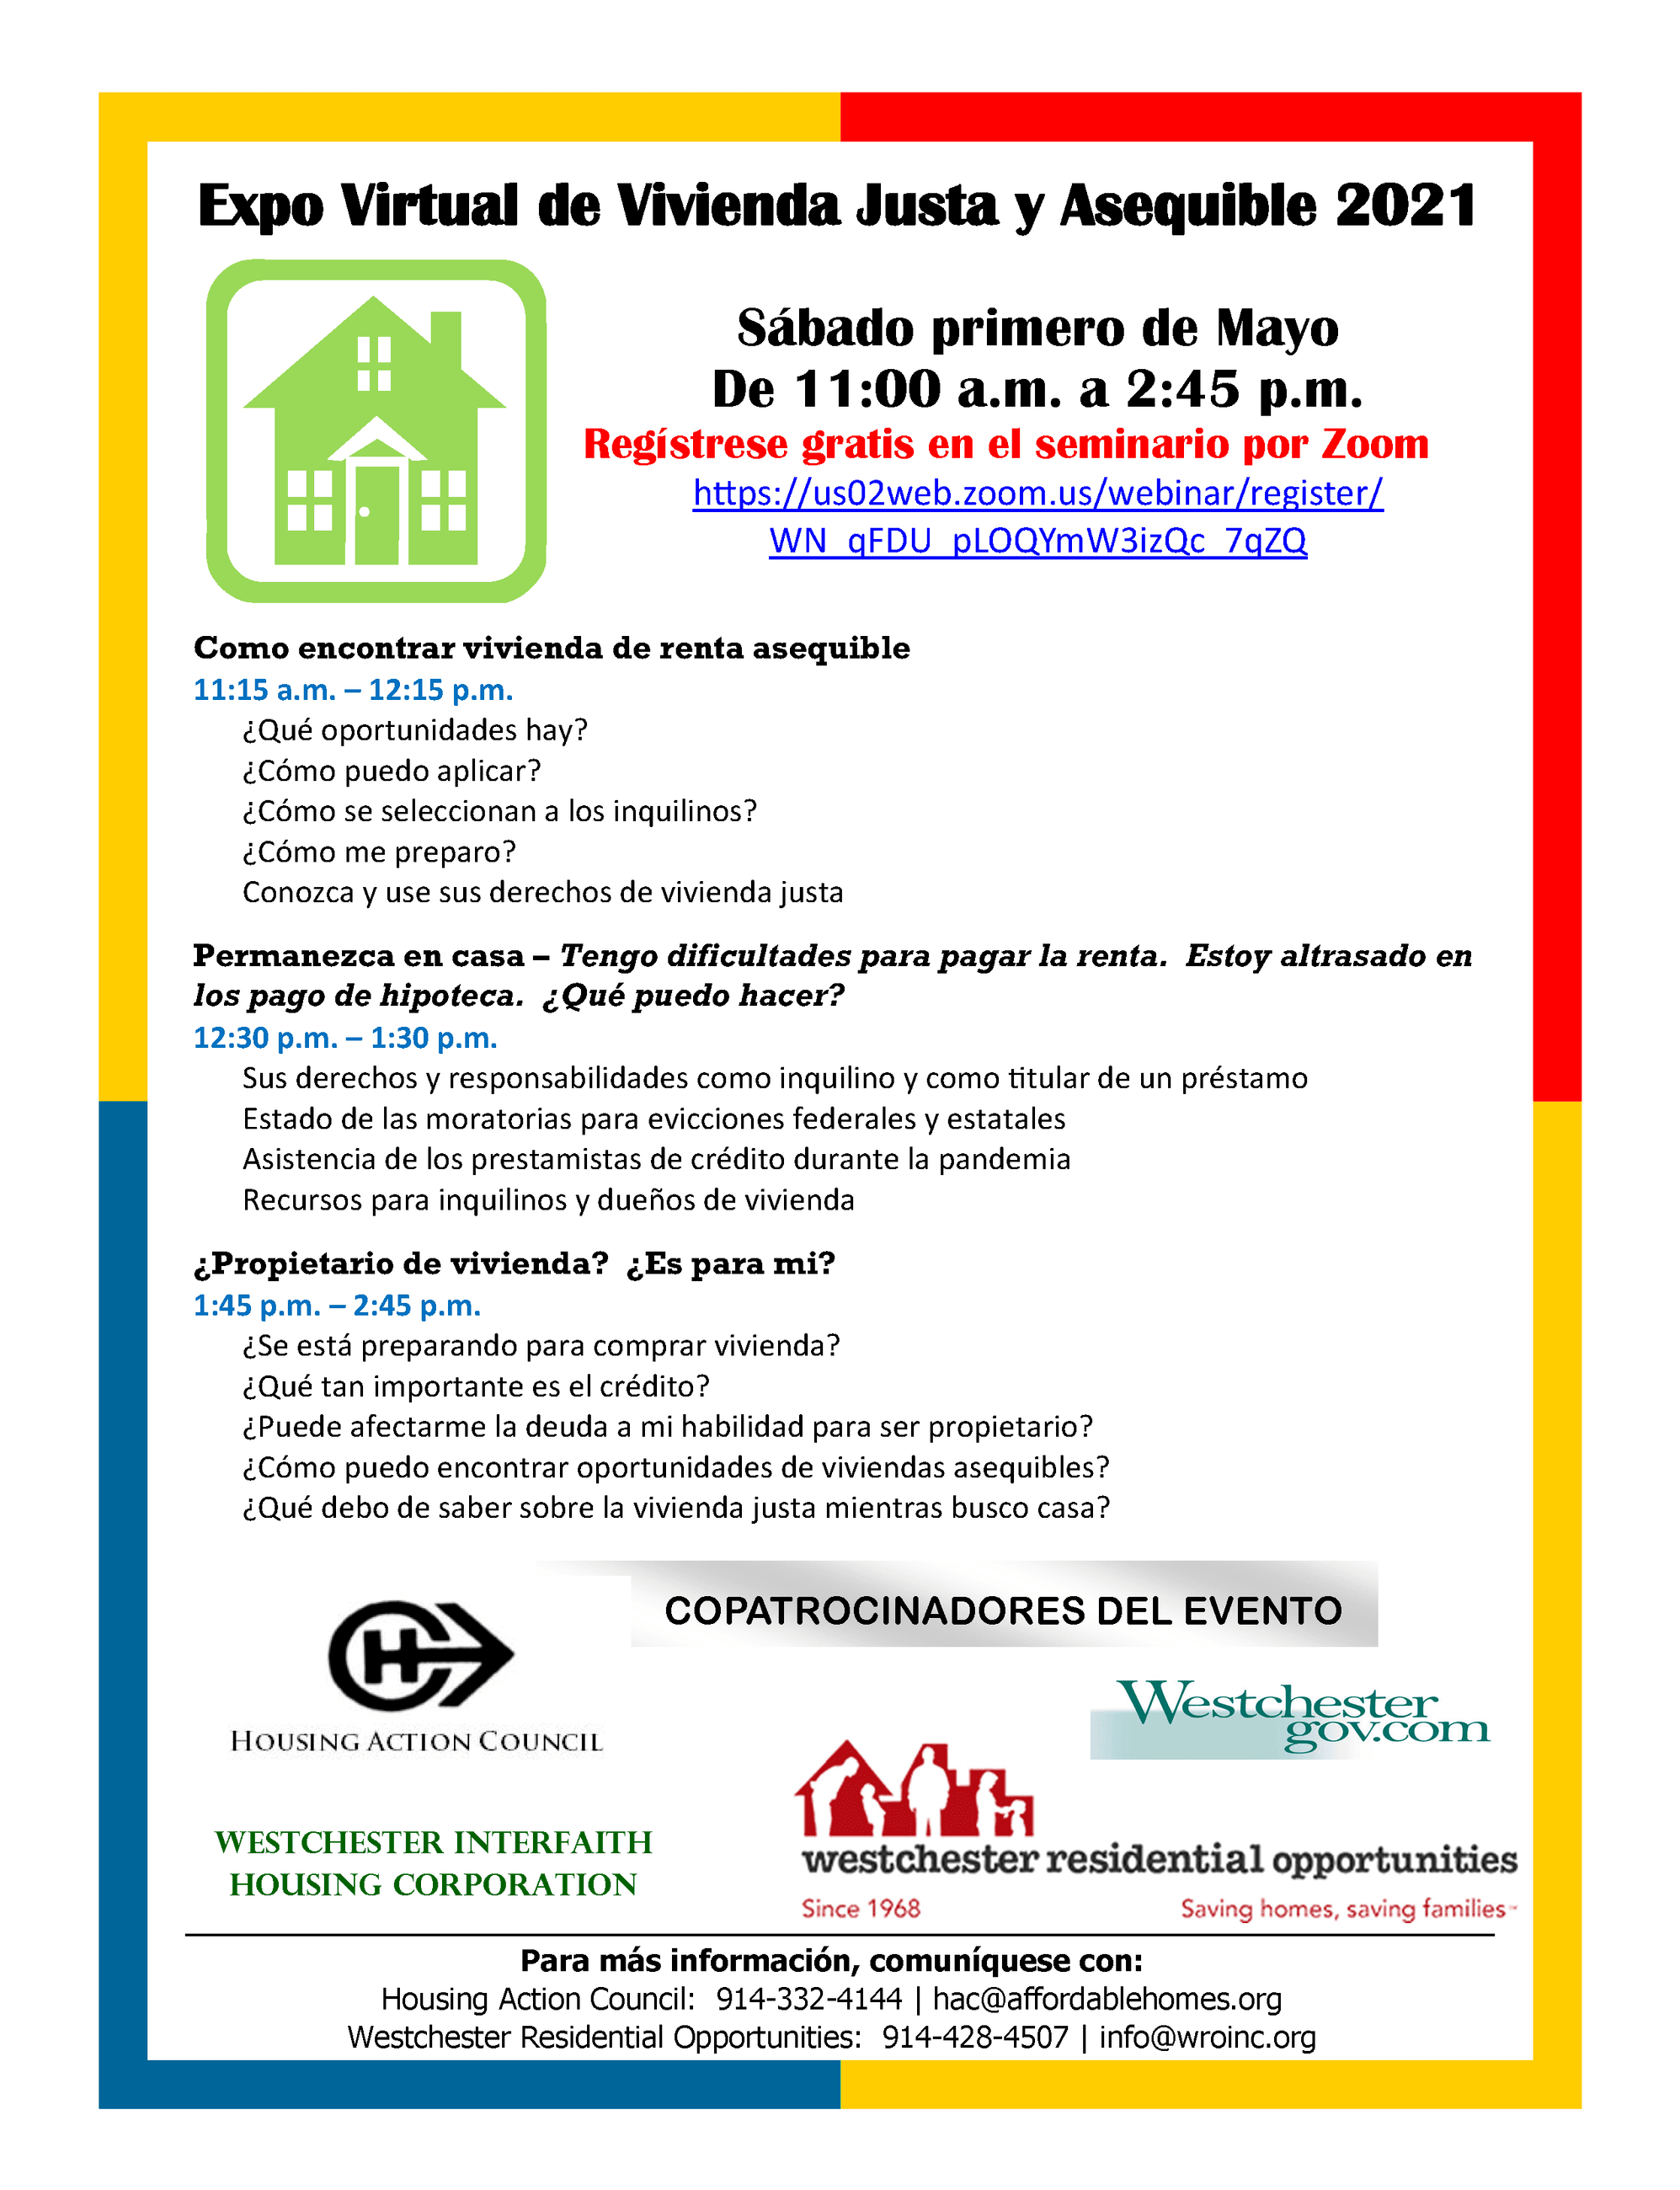 Housing Expo Flyer 2021 English and Spanish (1) (1)_Page_2